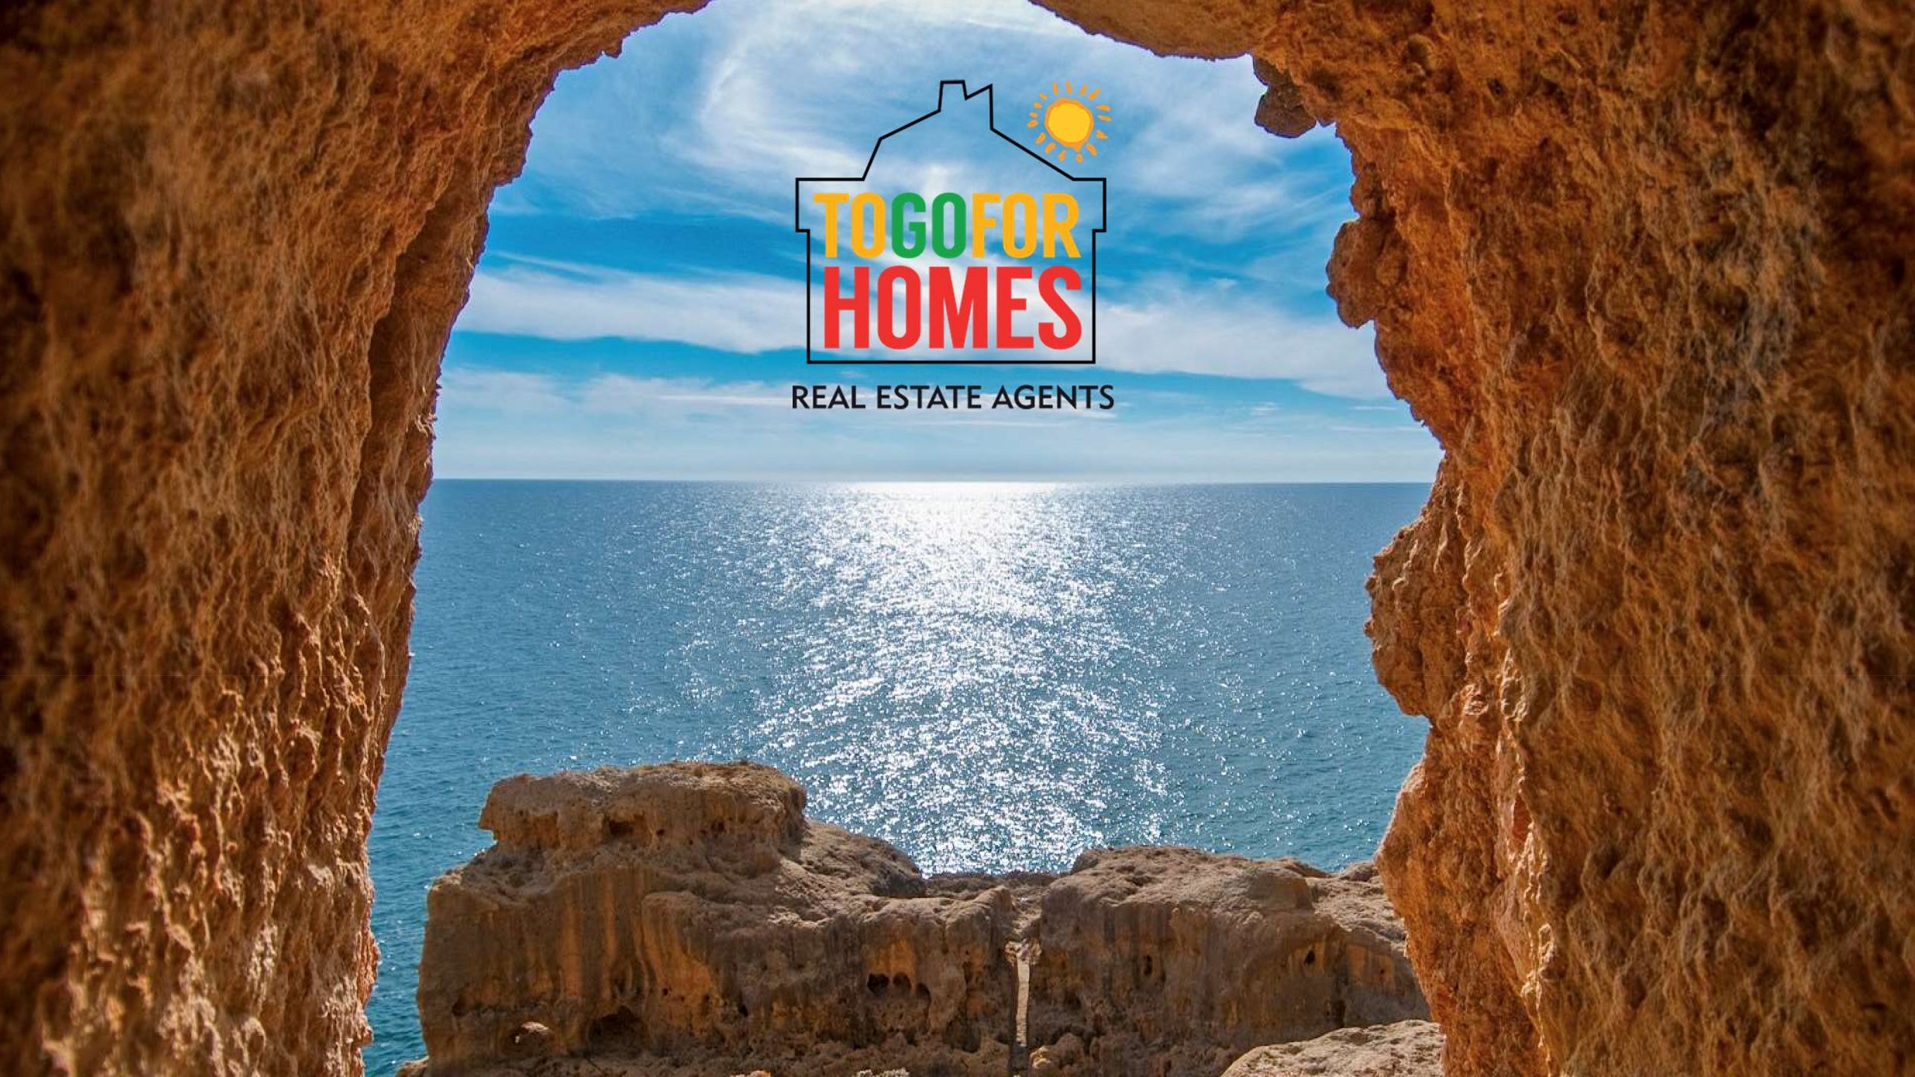 General Info about the Algarve, buying a Property and Golden Visa